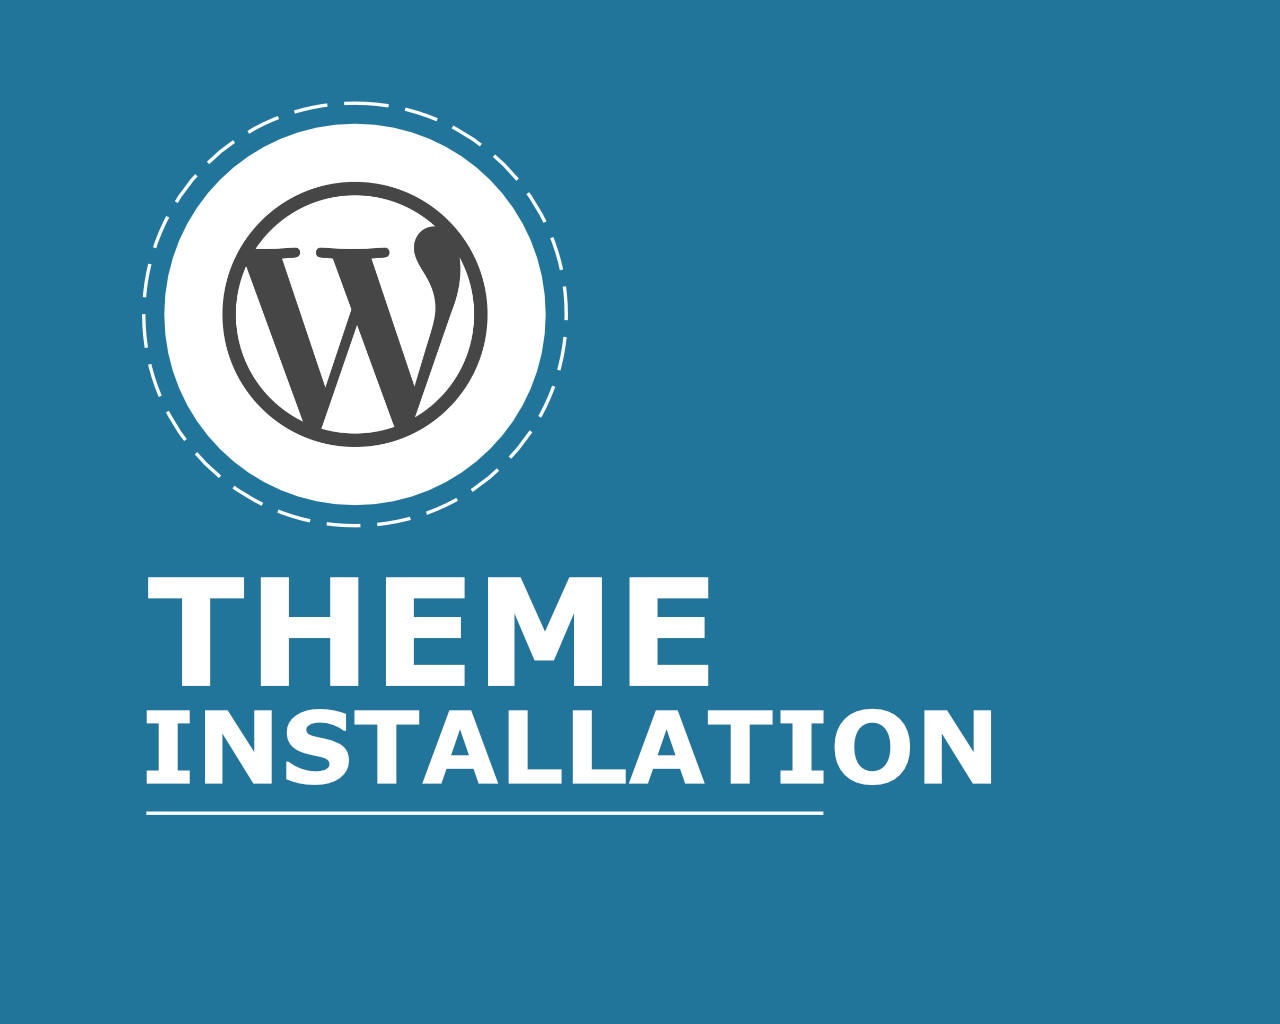 Wordpress Theme Installation  by jassdesigngroup - 105754